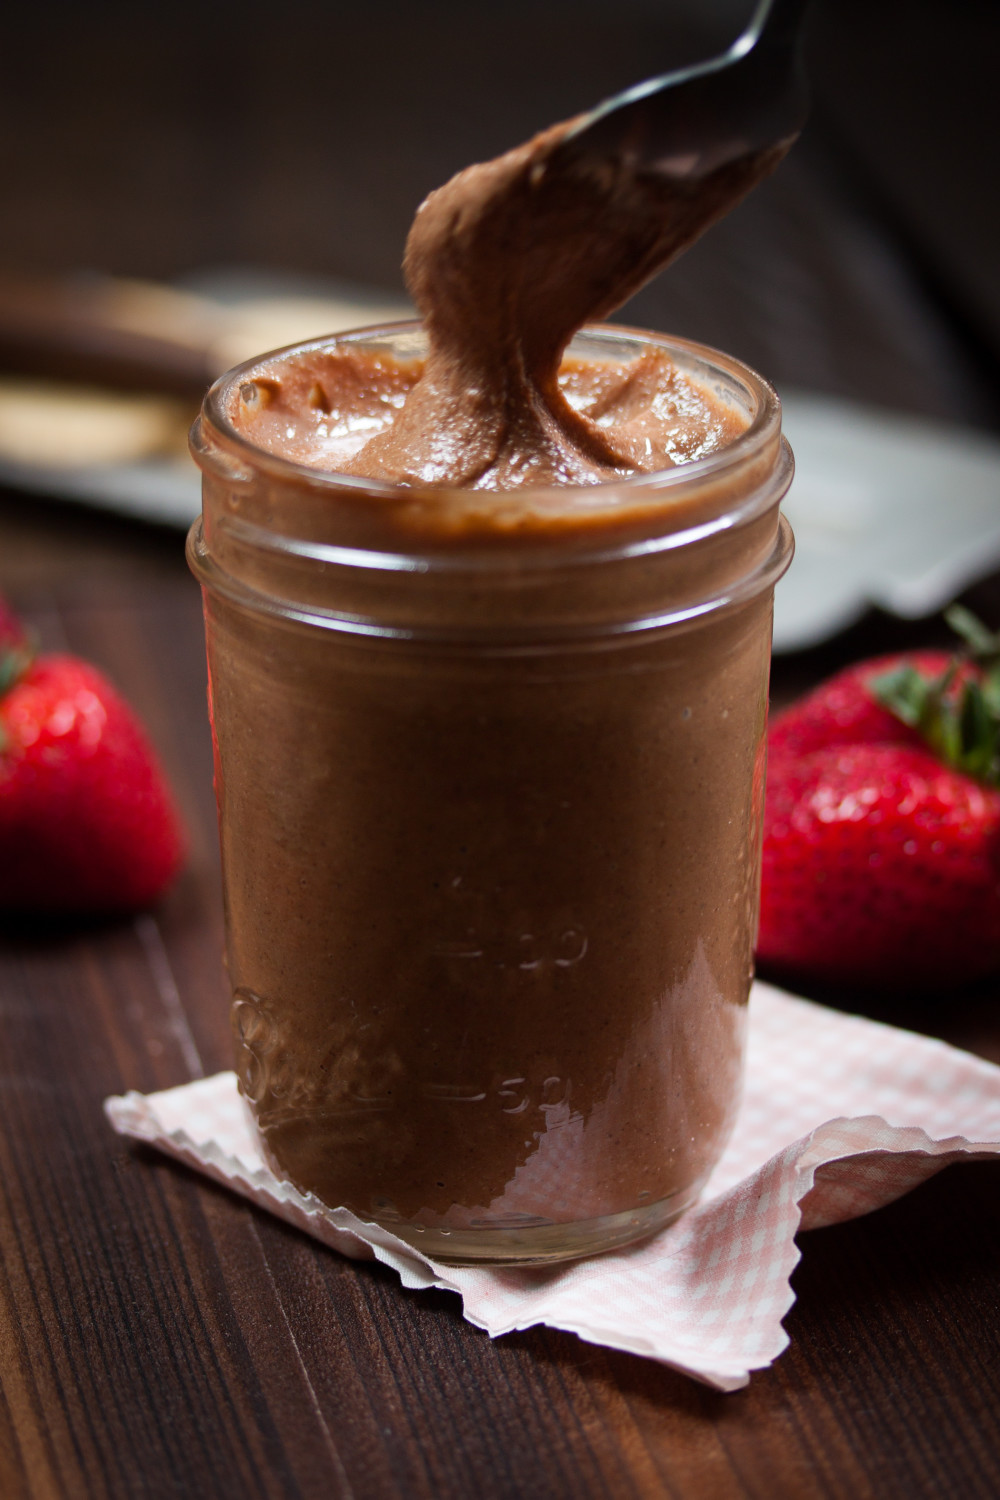 #vegan #gluten-free Salted Chocolate Cashew Butter